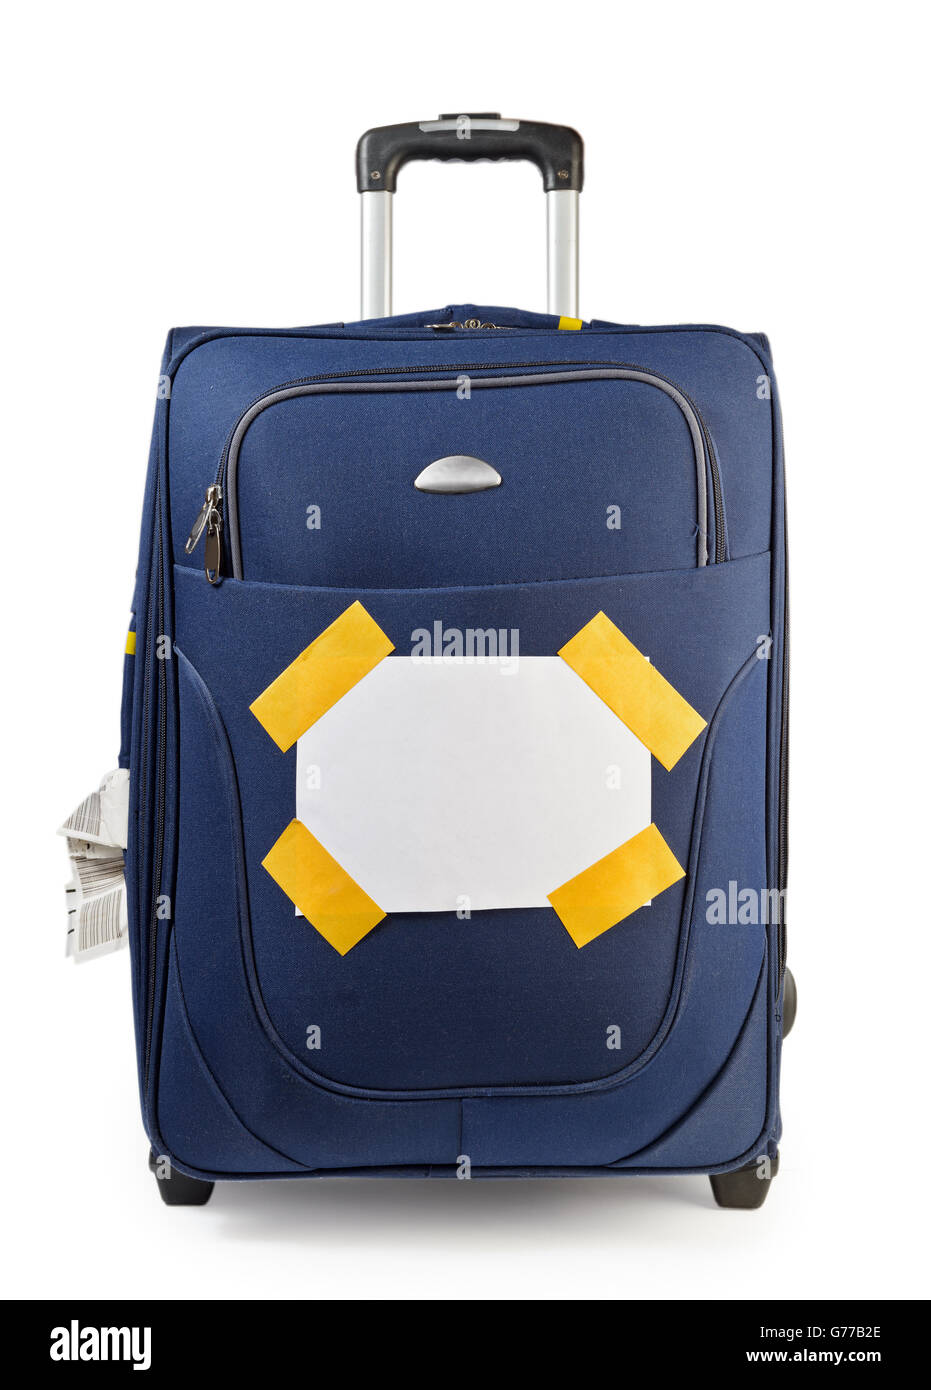 Journey suitcase with destination label isolated on white - Stock Image